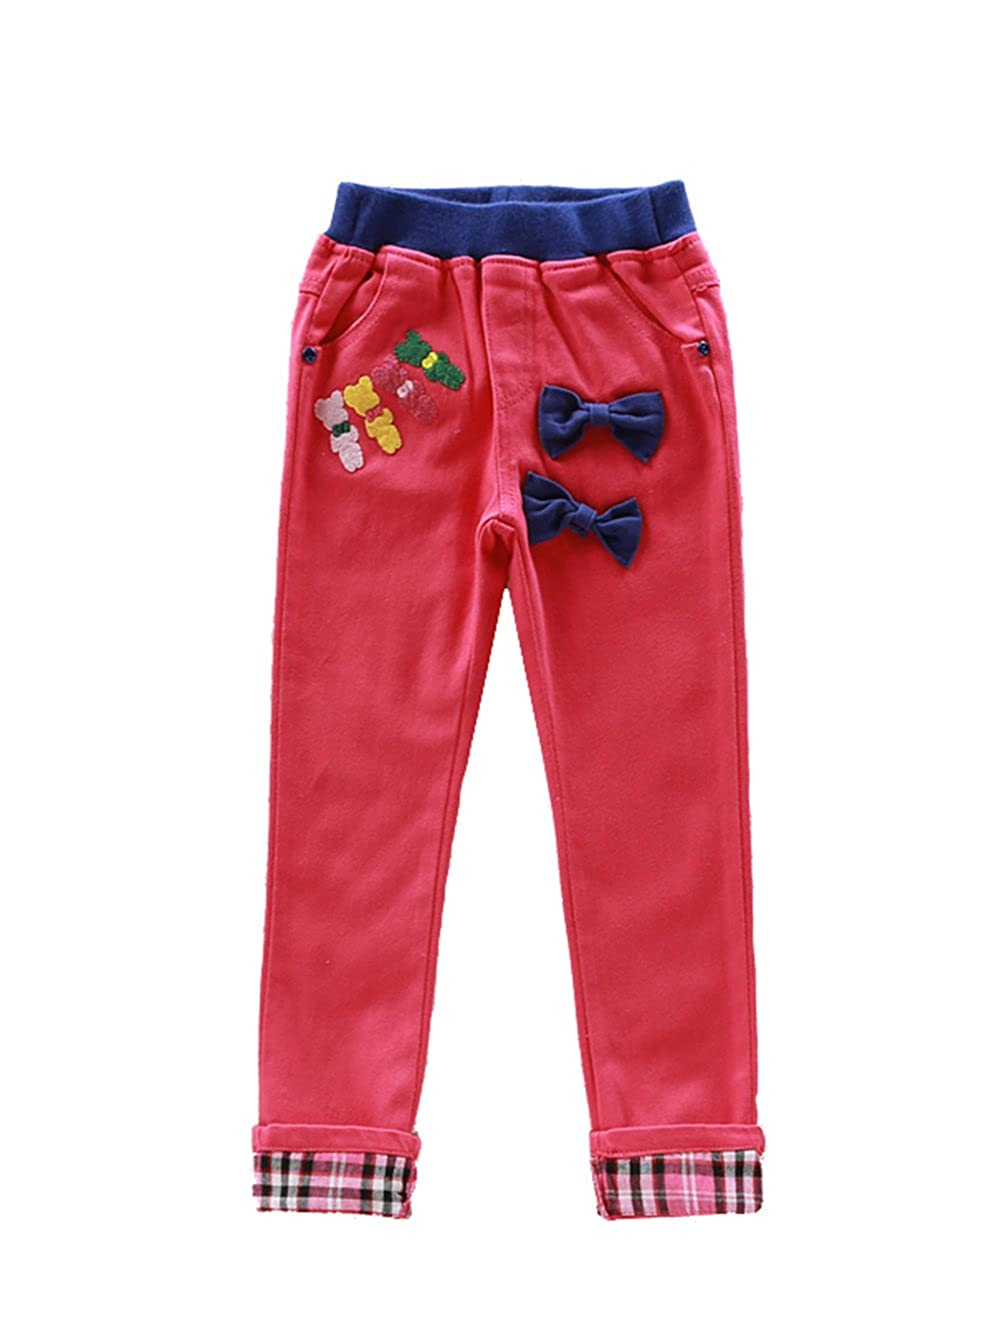 height:55.12 Only Faith Girls Pants Autumn Casual Pants Skinny Leg Pencil Pants , Rose Red 140